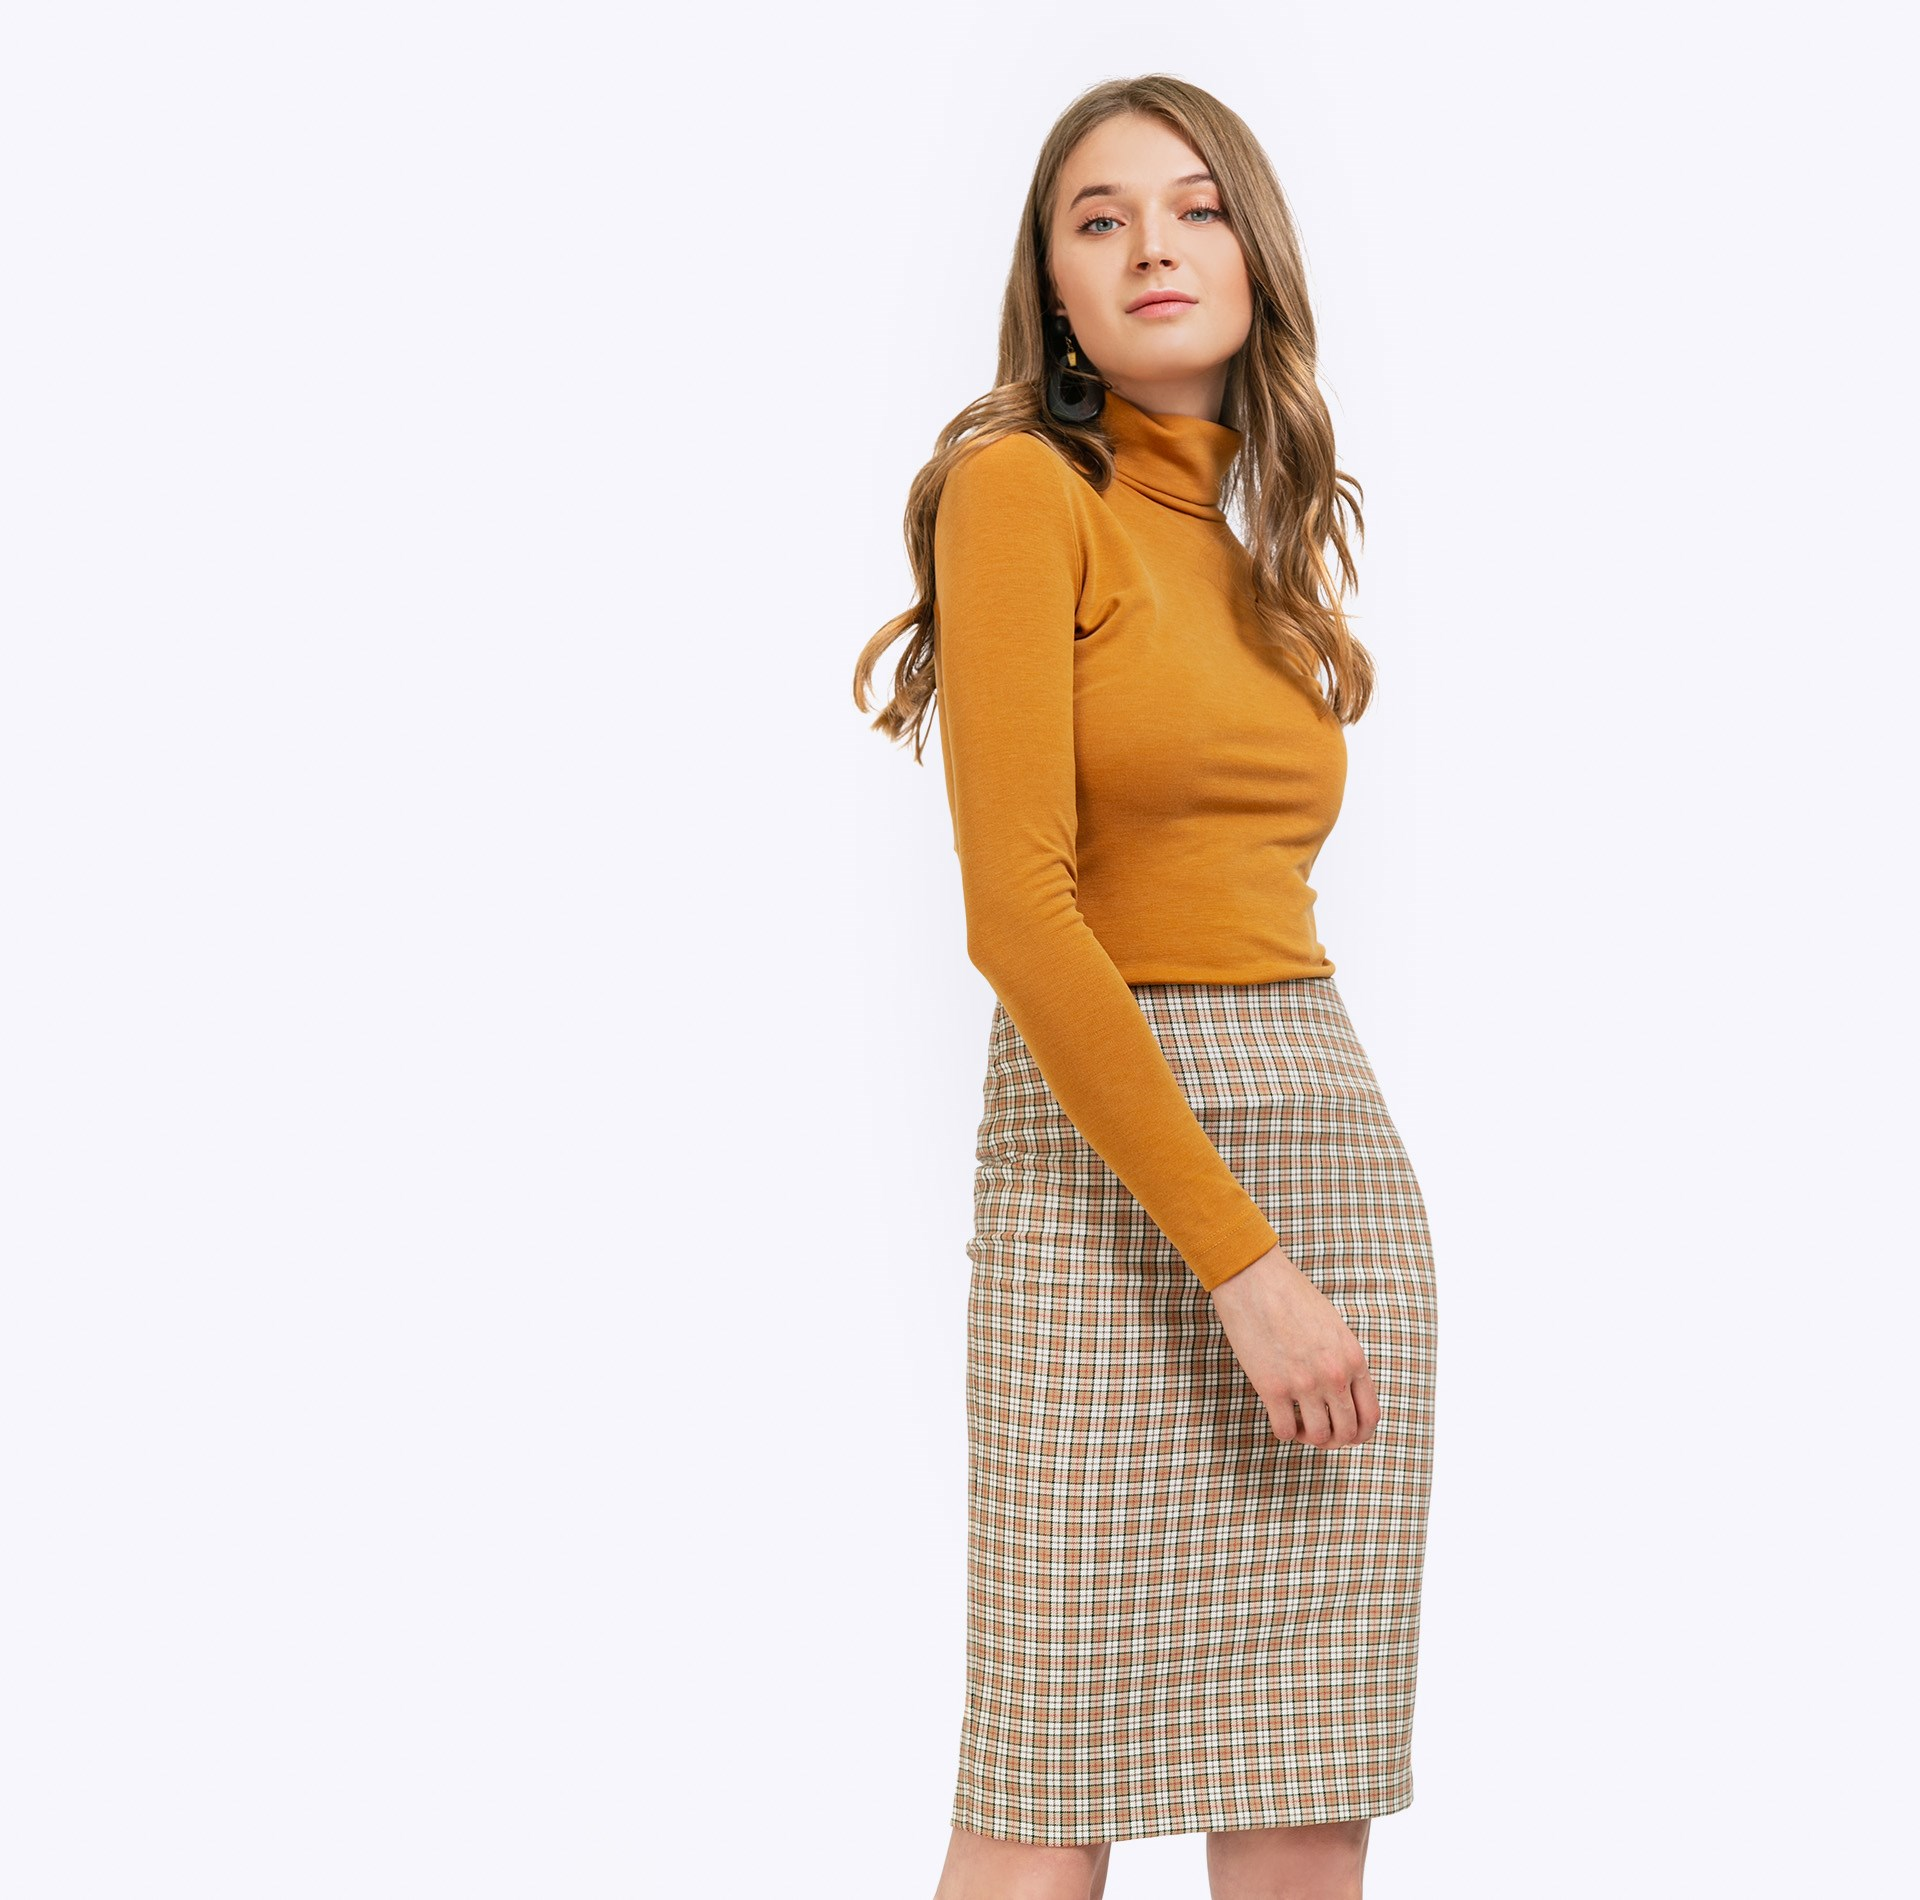 Skirt direct cut plaid plaid pencil skirt